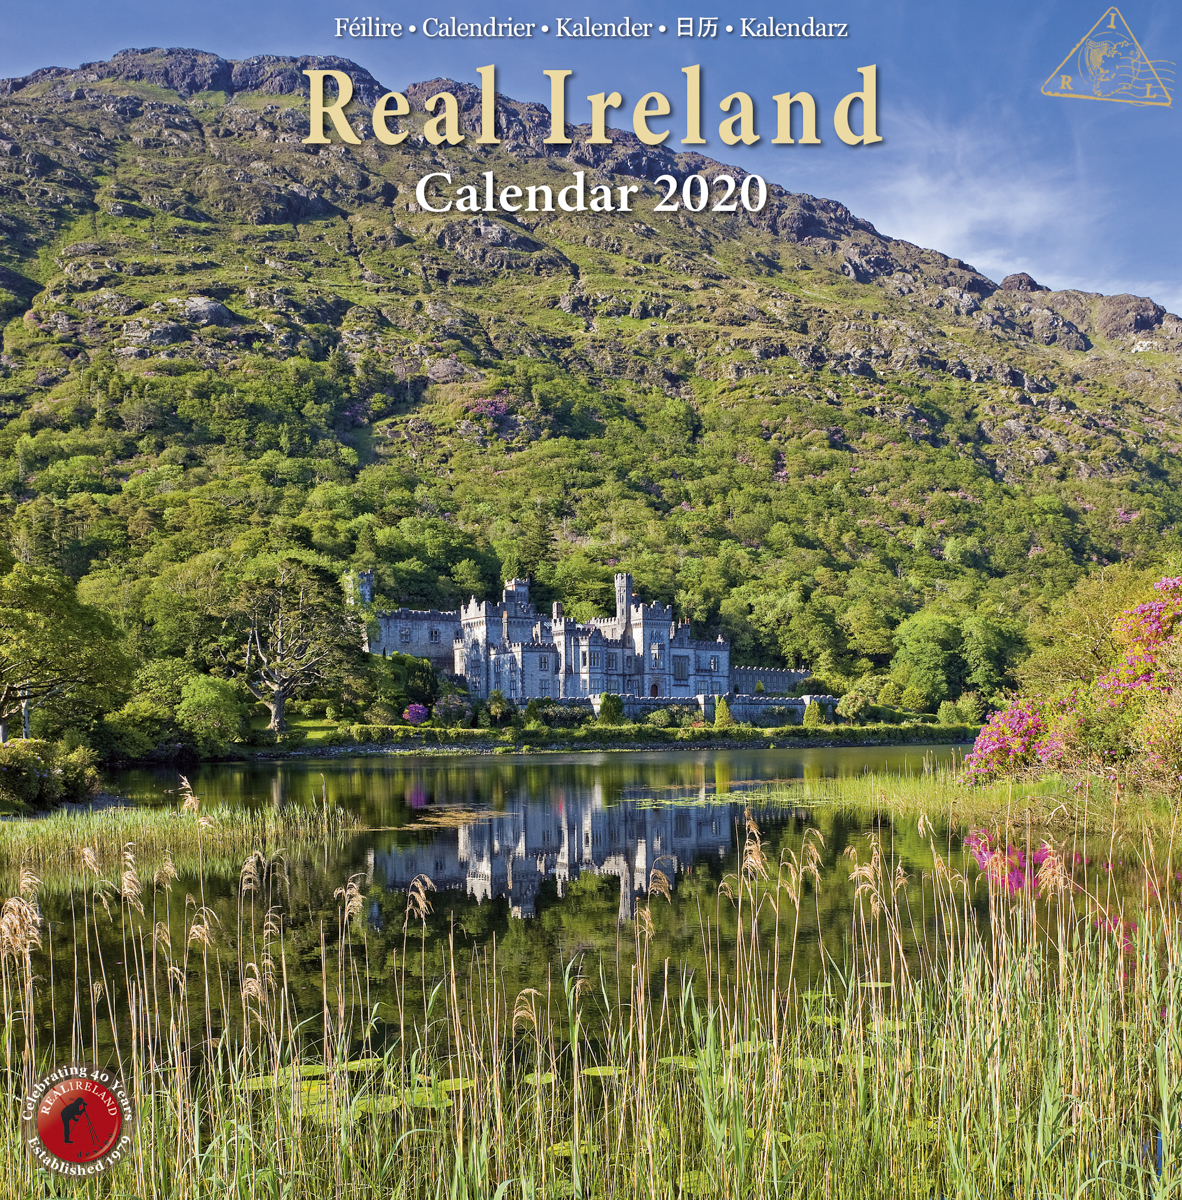 Art Wolfe Kalender Ireland Themed Calendars